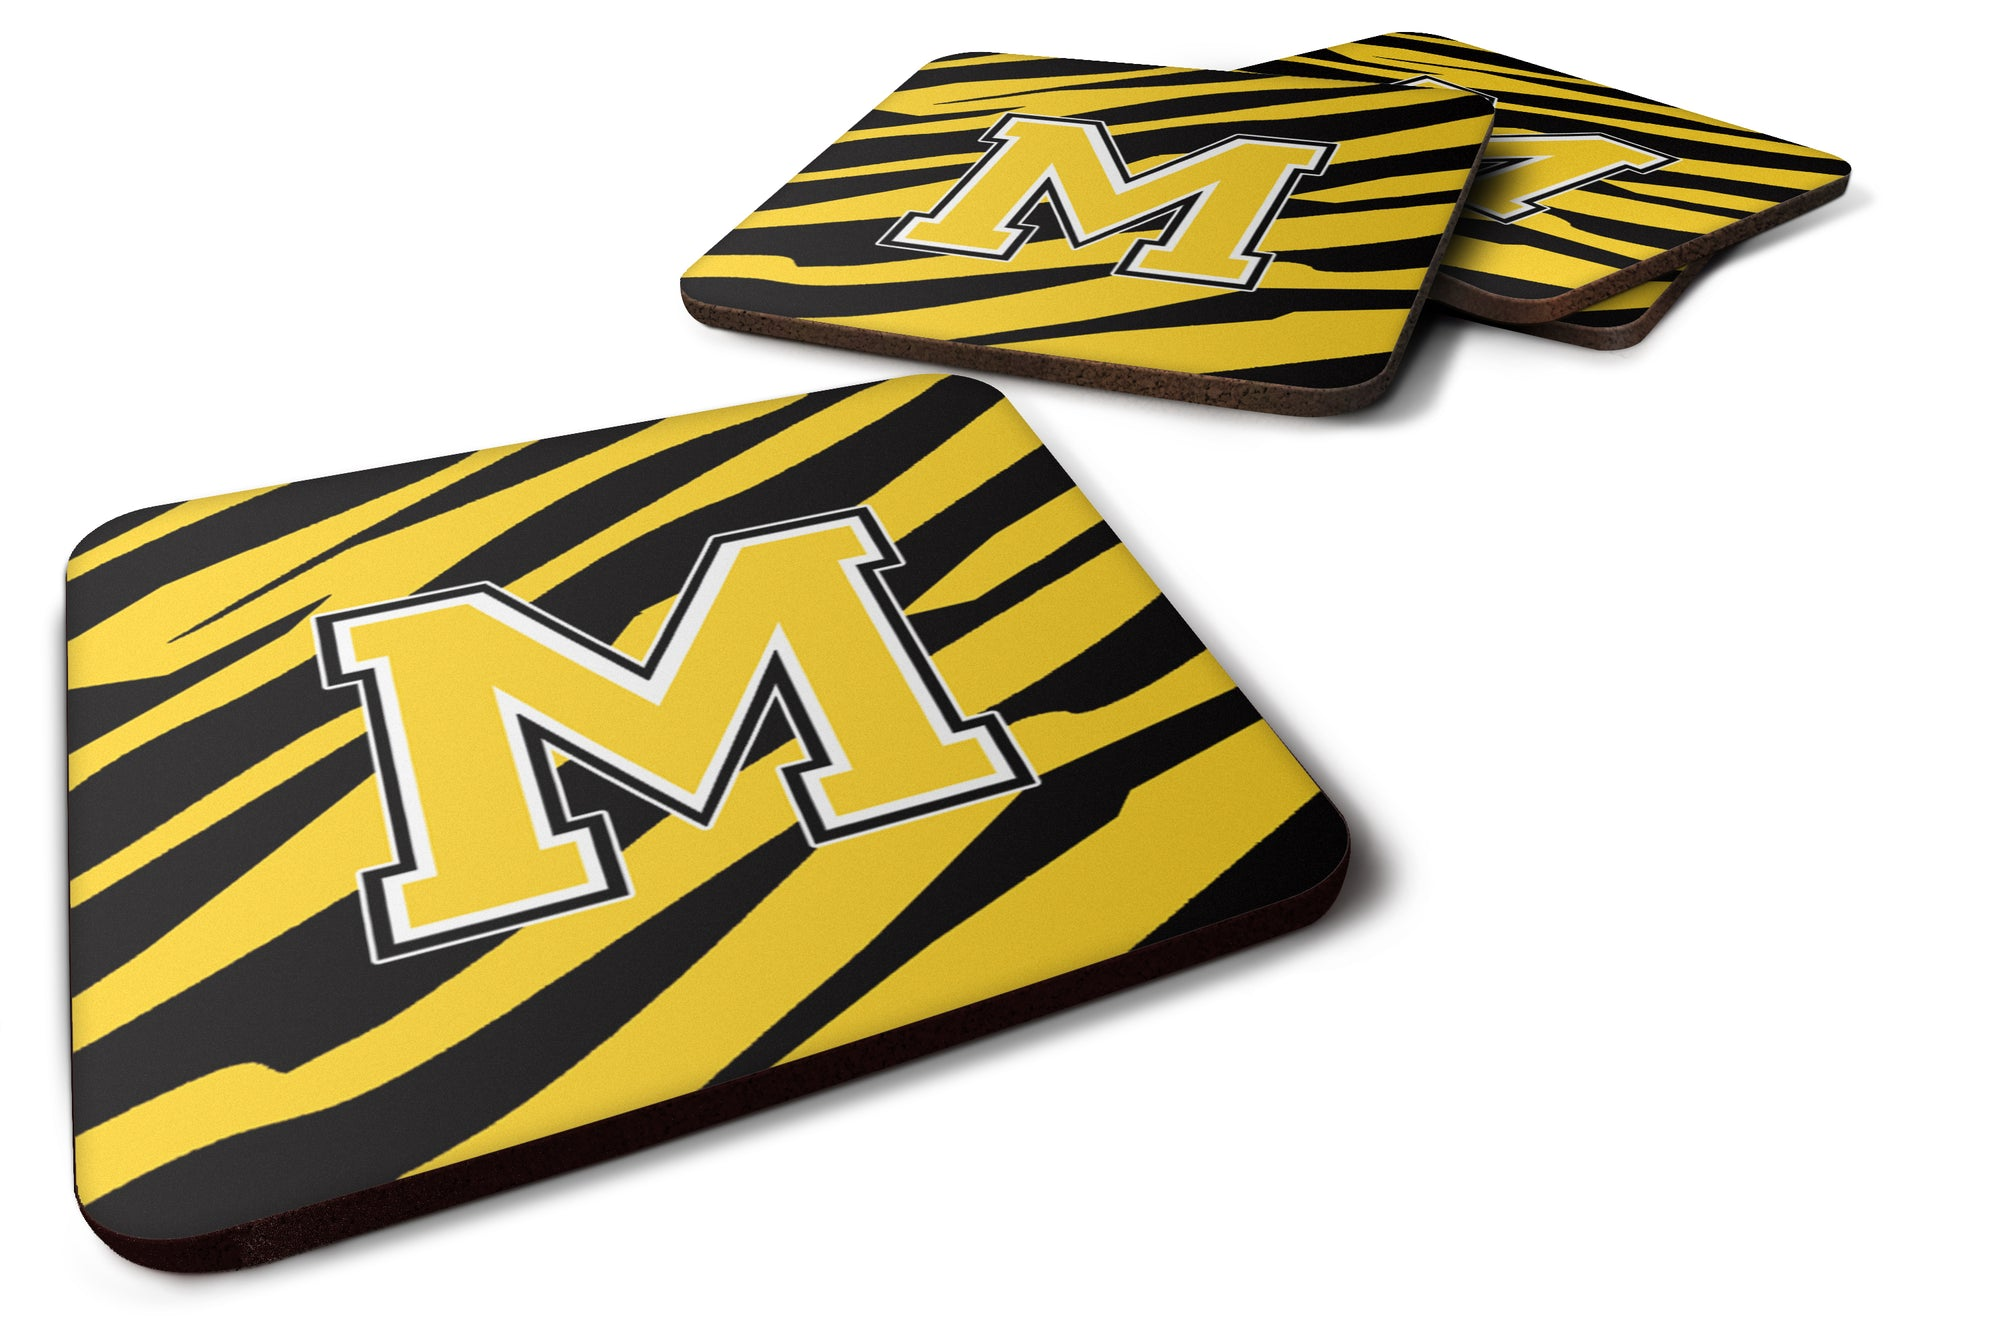 Set of 4 Monogram - Tiger Stripe - Black Gold Foam Coasters Initial Letter M by Caroline's Treasures